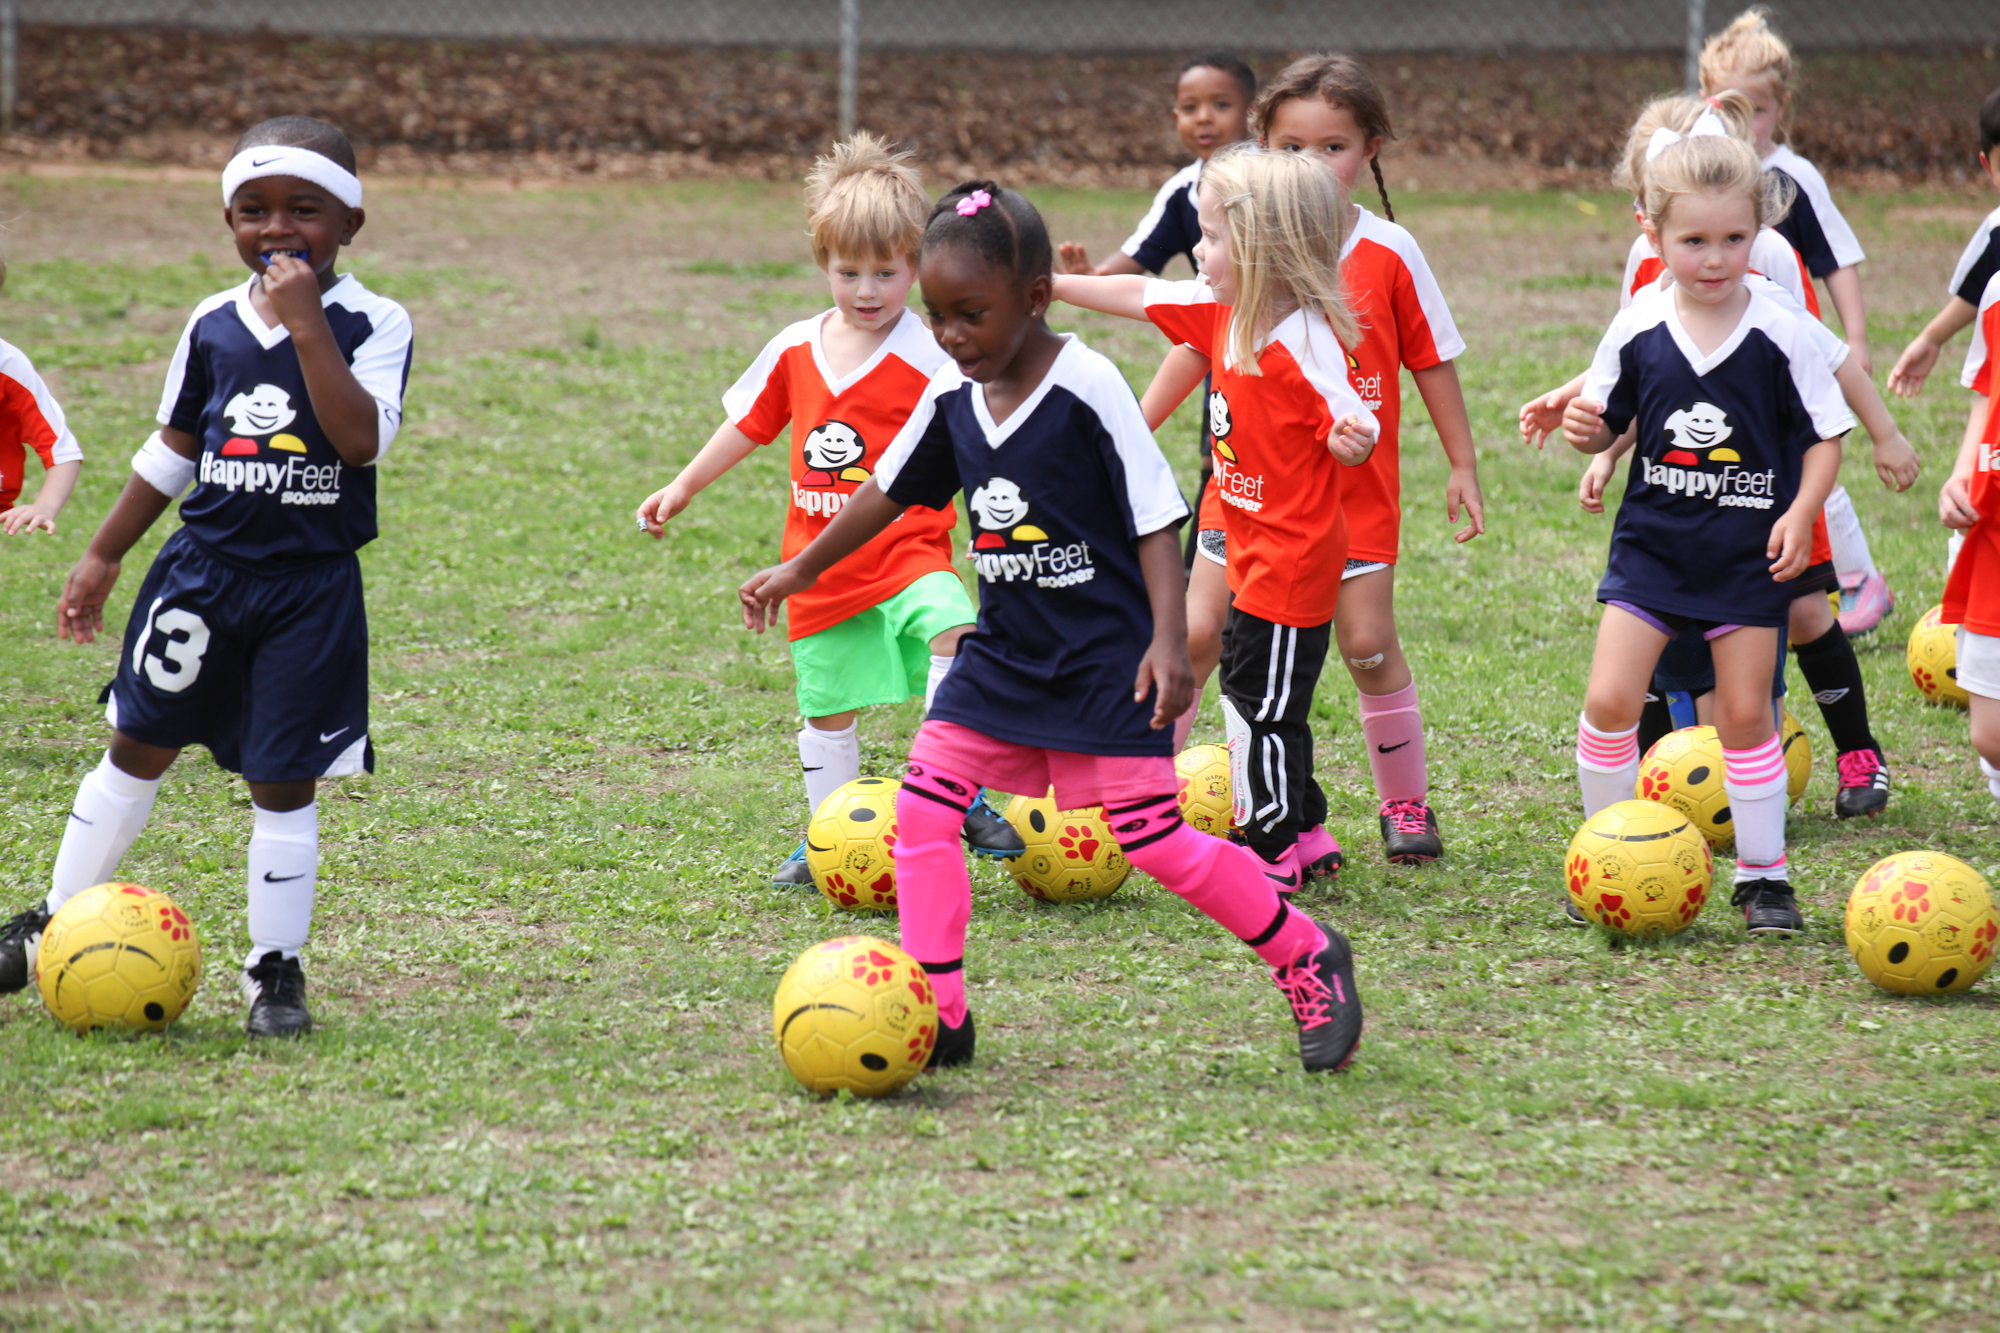 Summer Camps at I'On Club in Mt. Pleasant - Who: Boys and Girls Ages 4-7What: Creative, active, skill building sessions and FUN small sided soccer games to encourage bravery, skills, goals and confidence both on and off the field! Be a Game Changer!When: Friday and Saturday Mornings June- AugustFriday June 29th and Saturday June 30th at 9:00-11:00am Shooting Skills CampFriday July 13th and Saturday July 14th at 9:00-11:00am Girl's Skills CampFriday August 24th and Saturday August 25th at 9:00-11:00am Goal Keeper CampWhere: I'On Club in Mount PleasantCost: Registration opens May 1st. $30 for 1 session and $20 for each additional session, Includes Professional Coaching, Field Usage, Free T-shirt and soccer FUN skill and confidence building!